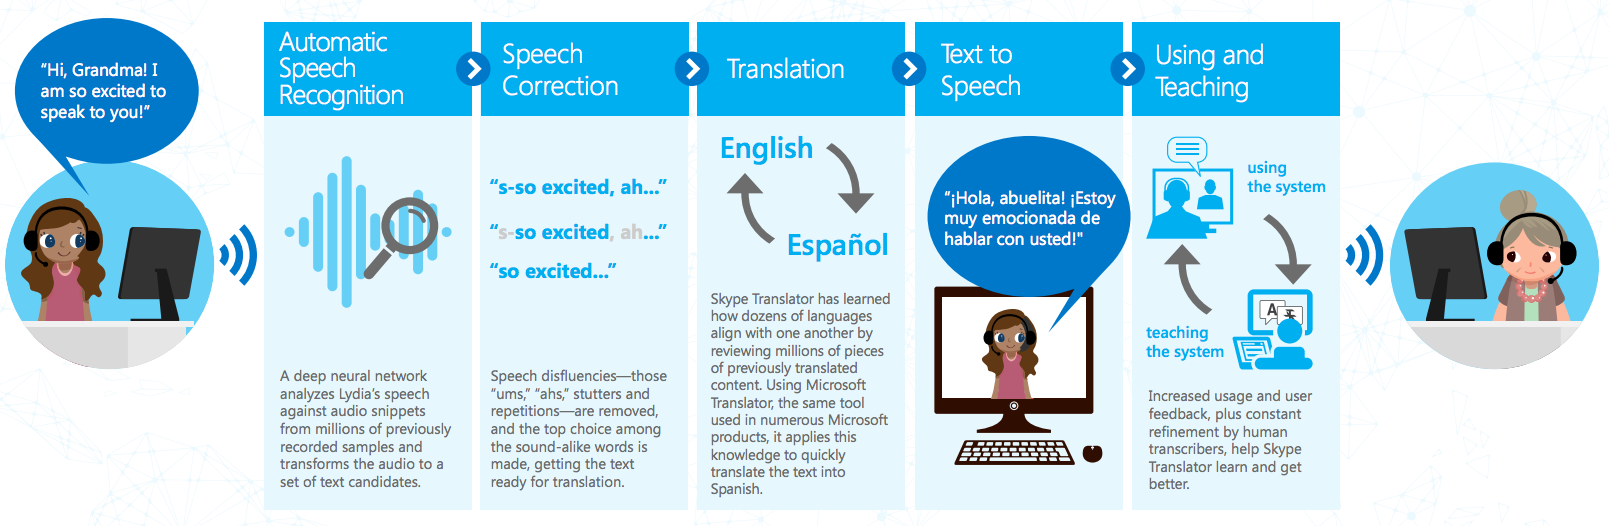 Skype's real-time translator feature goes live with support for